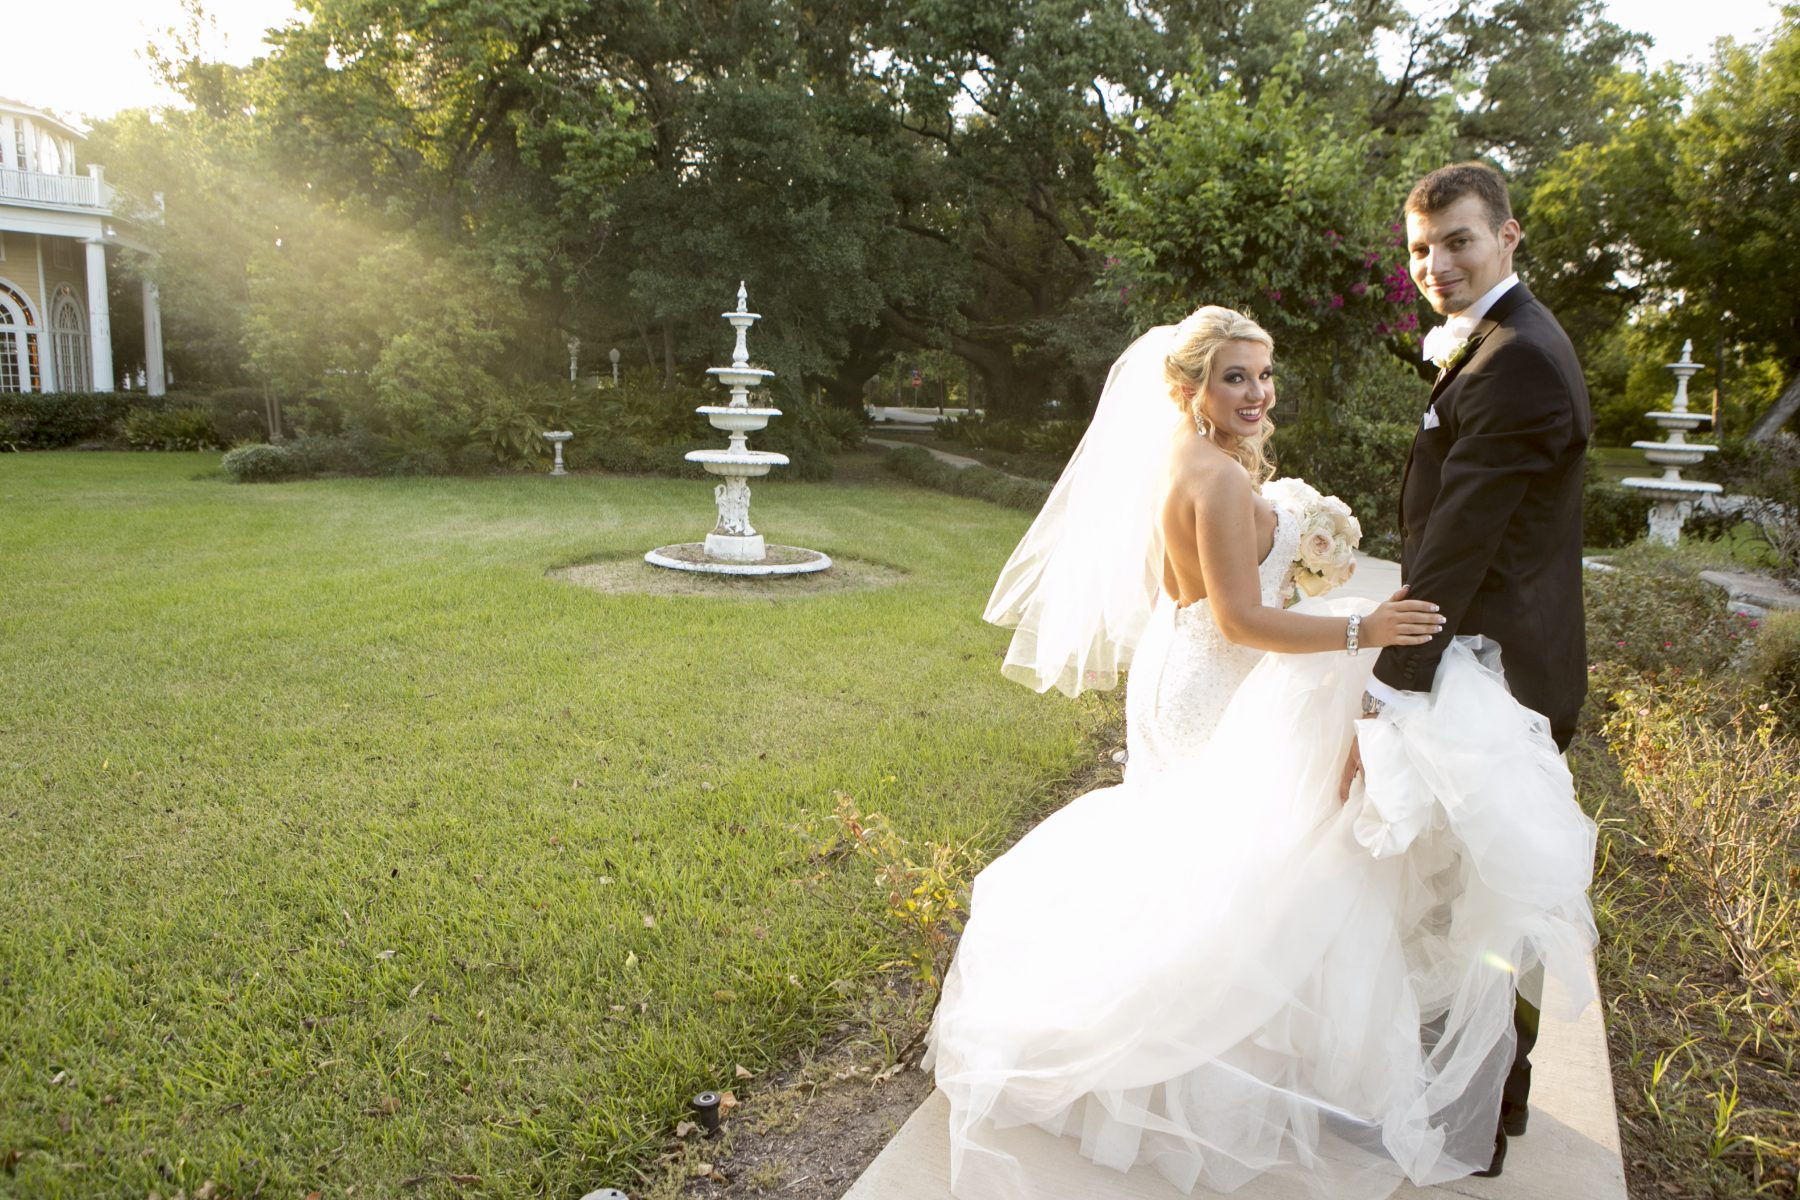 Number One Choice | Missouri City Wedding Photographer